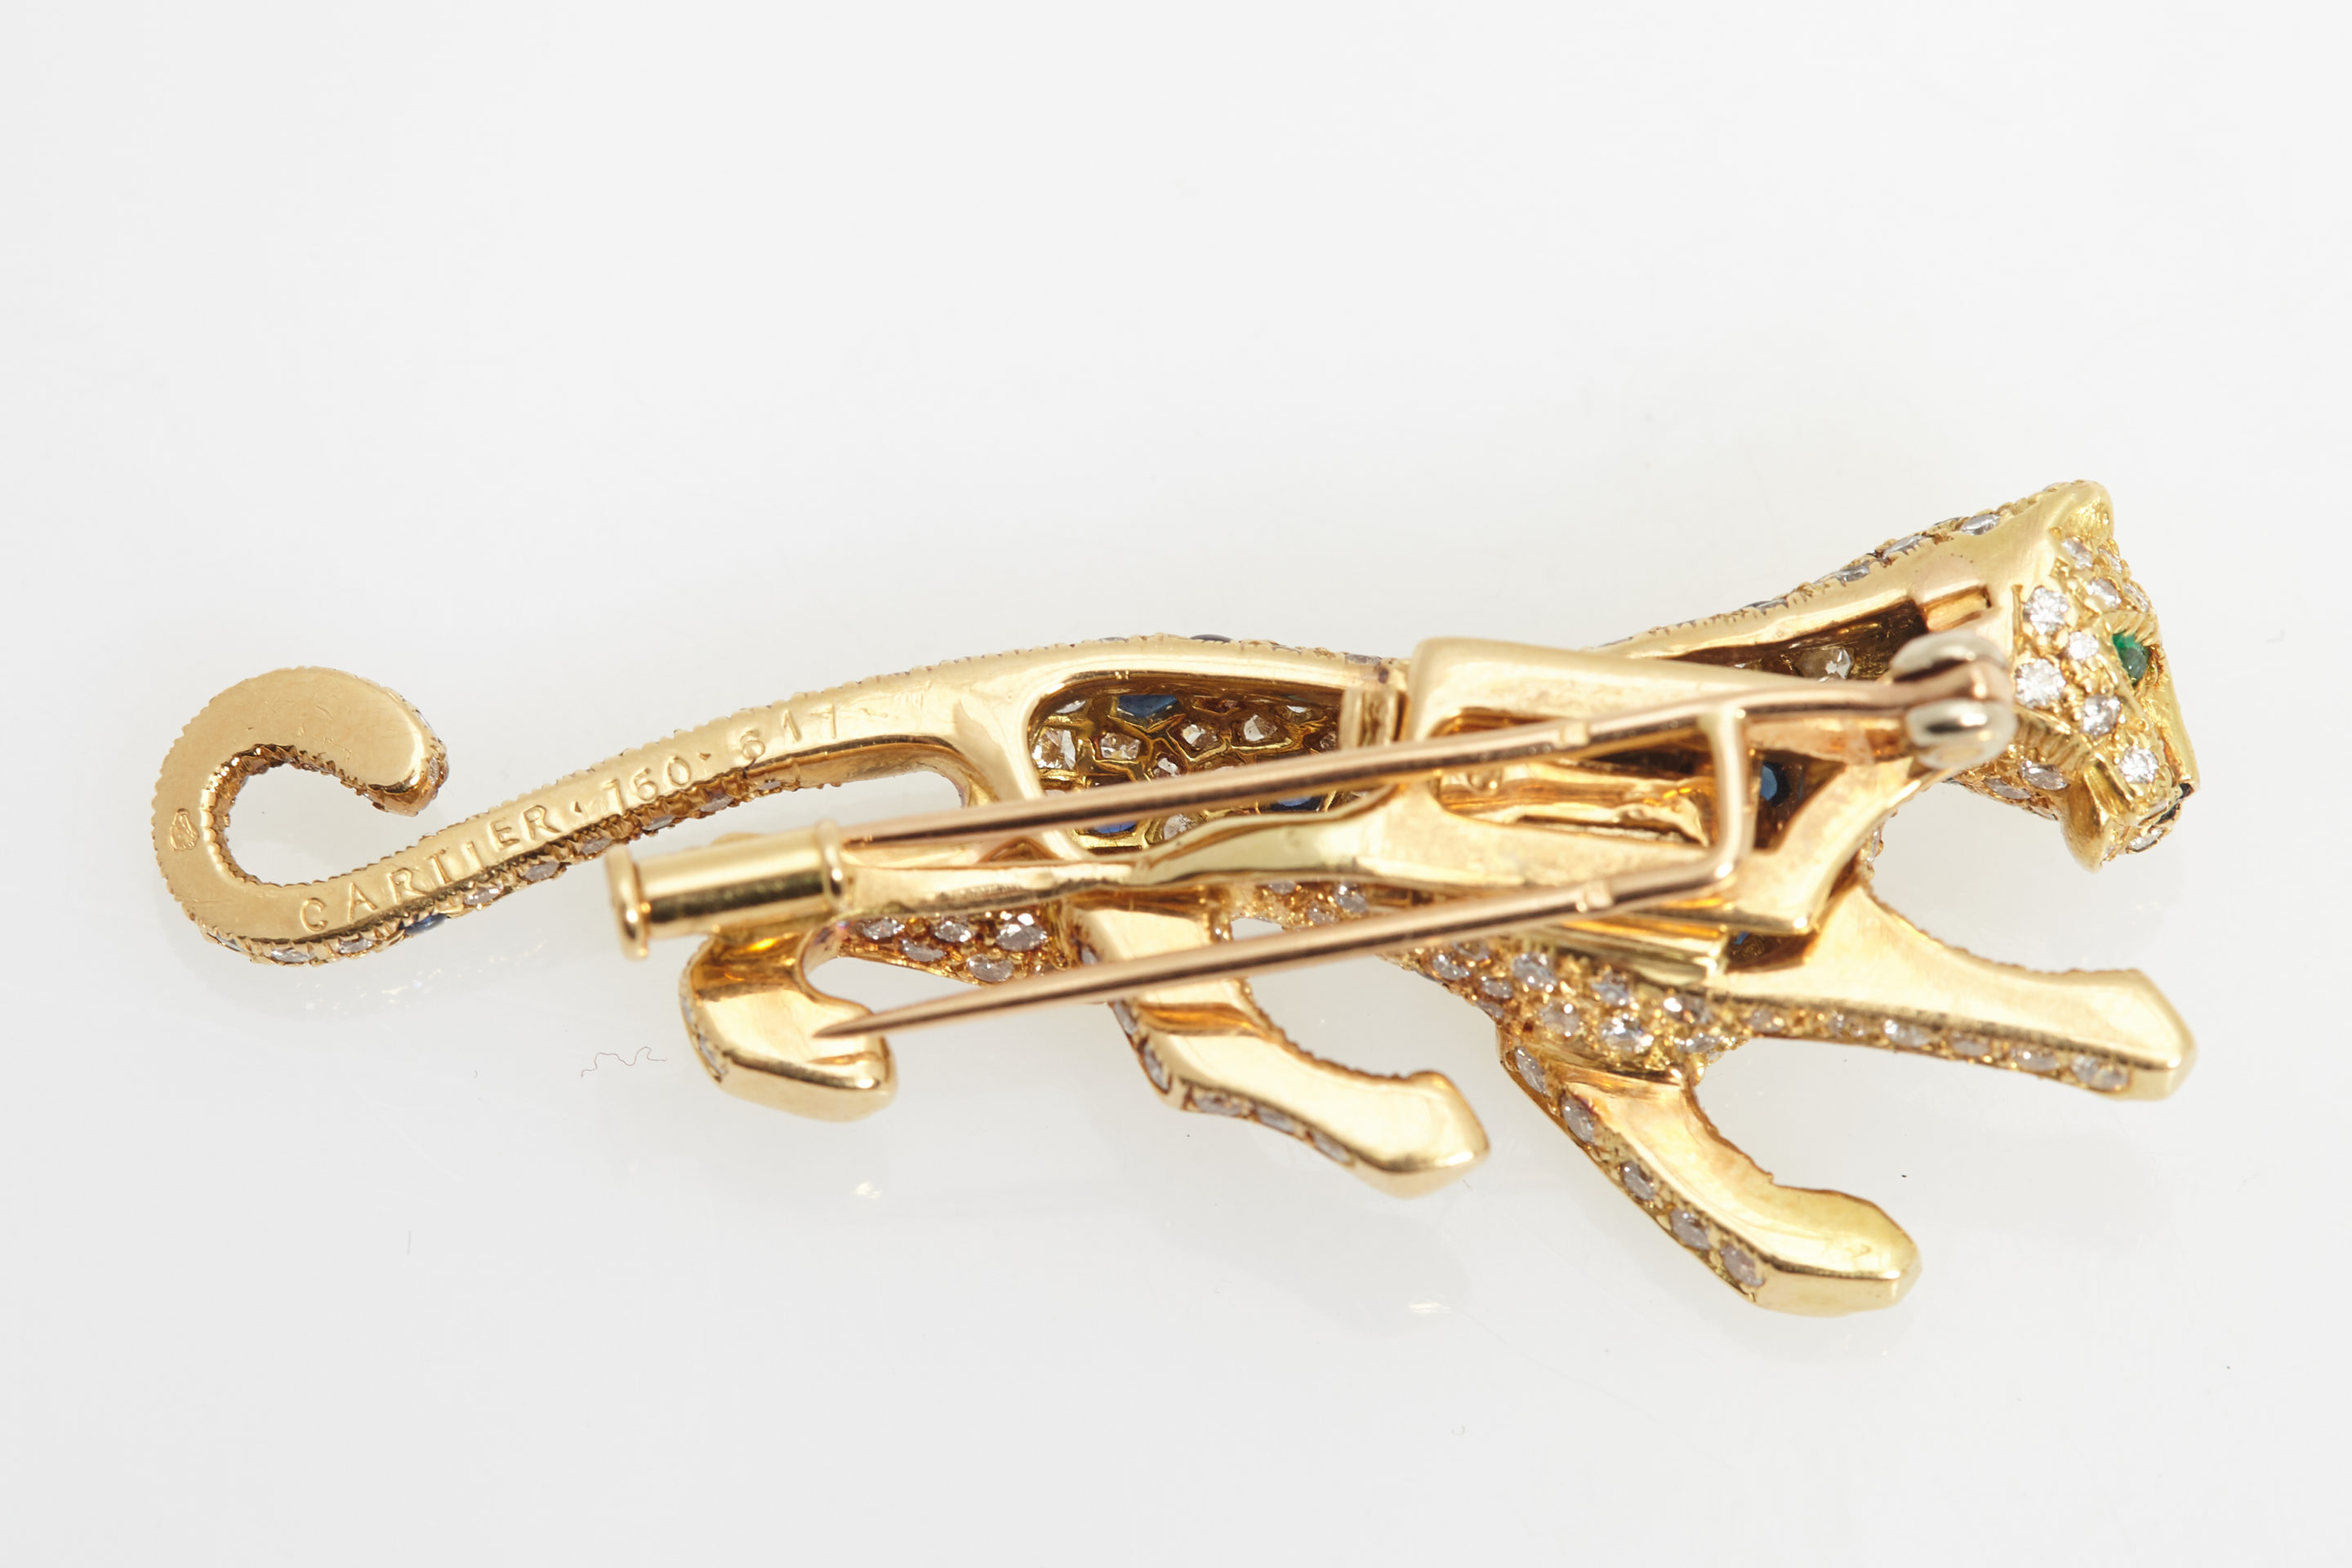 j for cartier flower brooches gold sale diamond jewelry id at z brooch